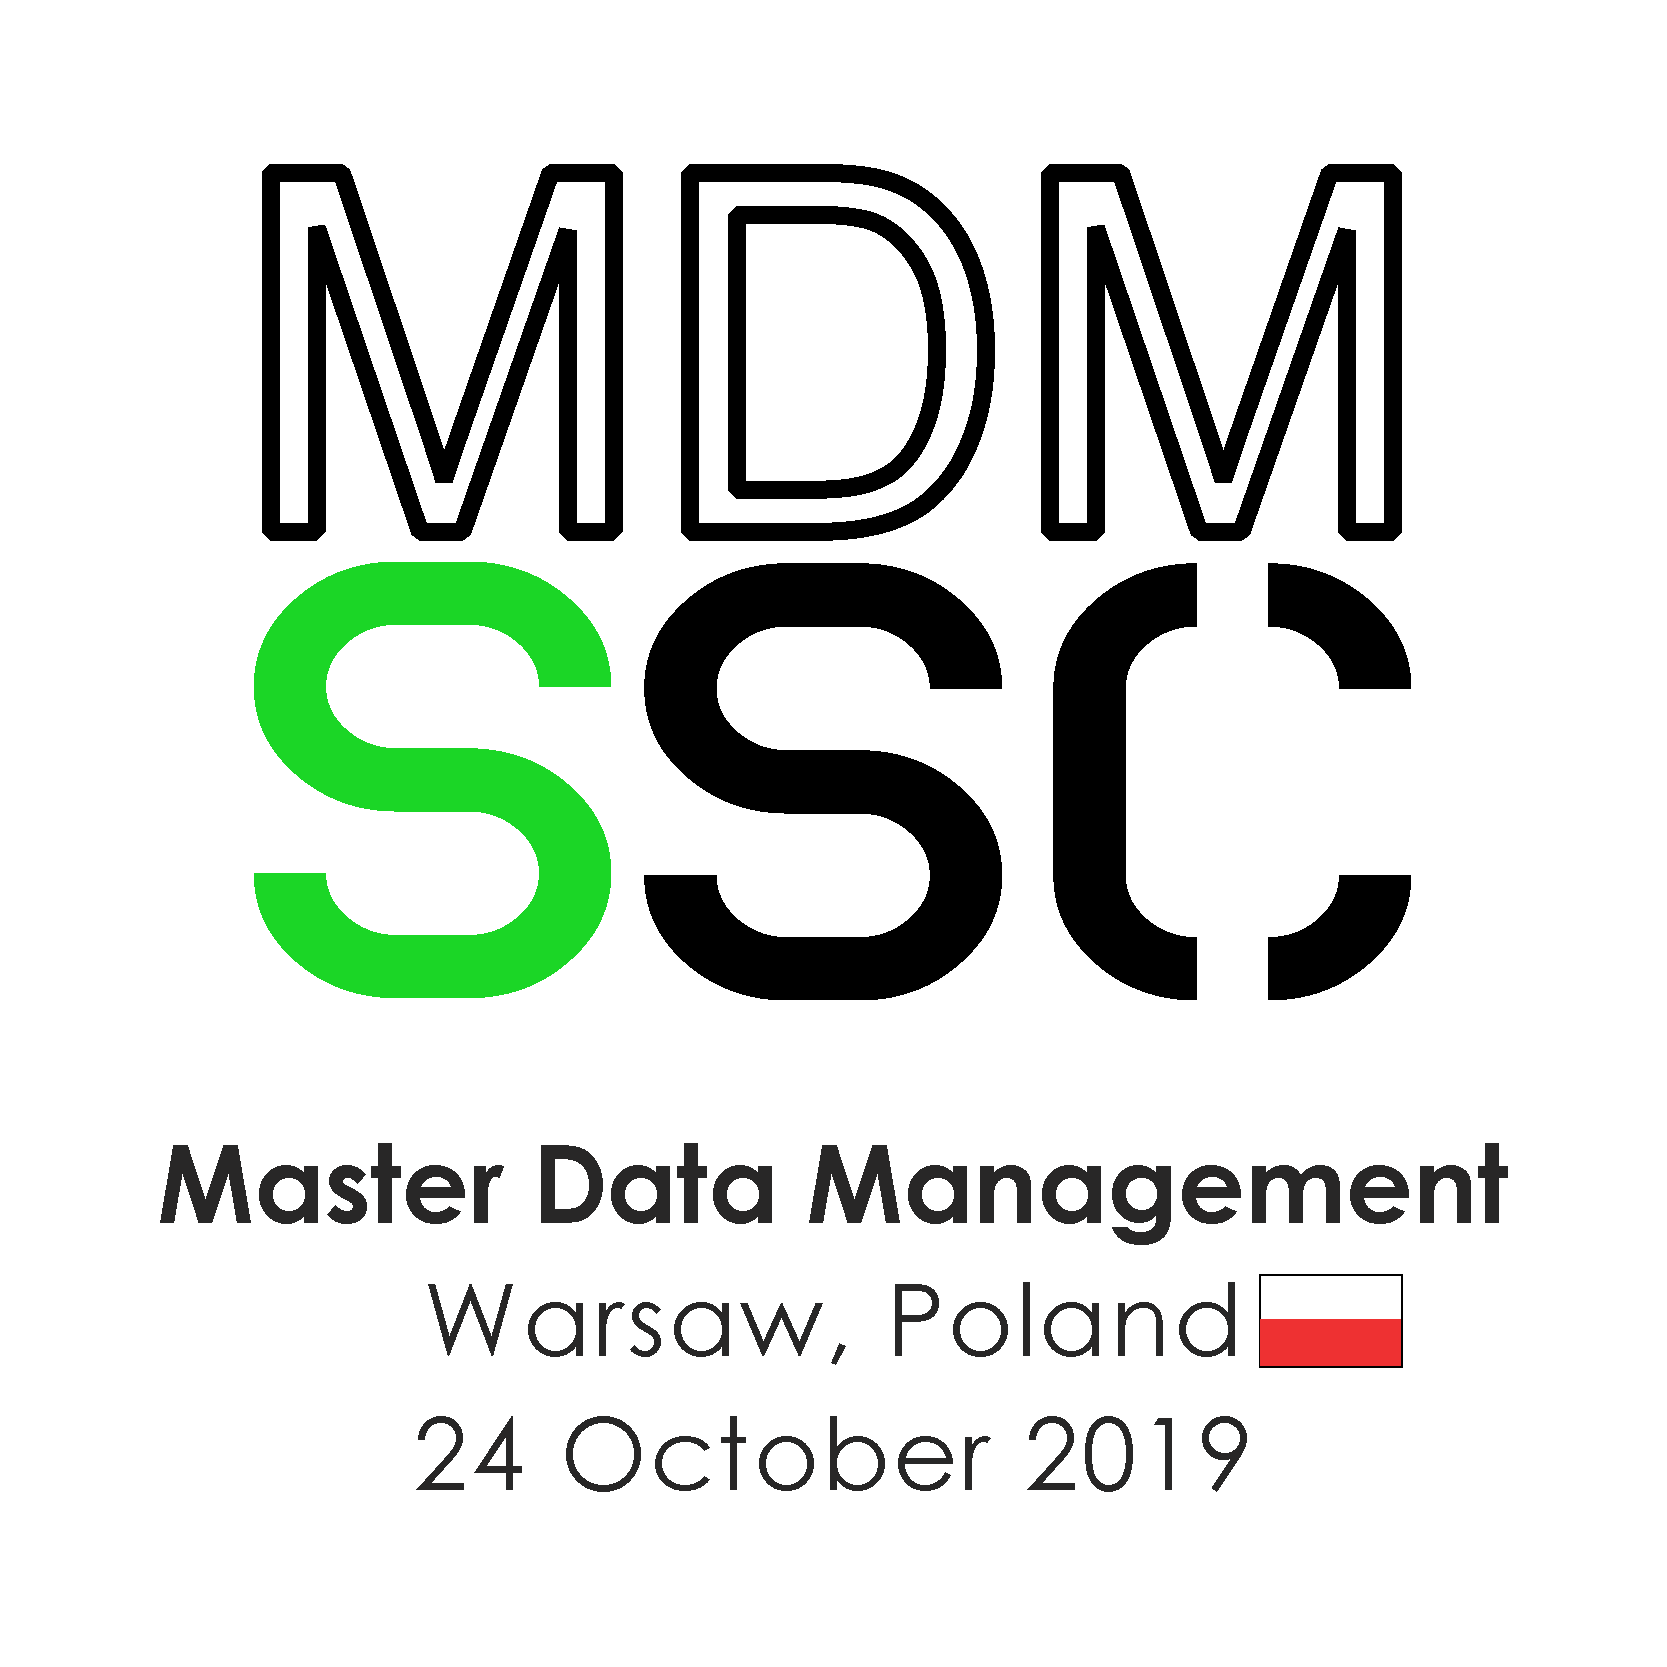 MDM-in-SSC_Conference_Warsaw_2019_logo_connect-minds_website